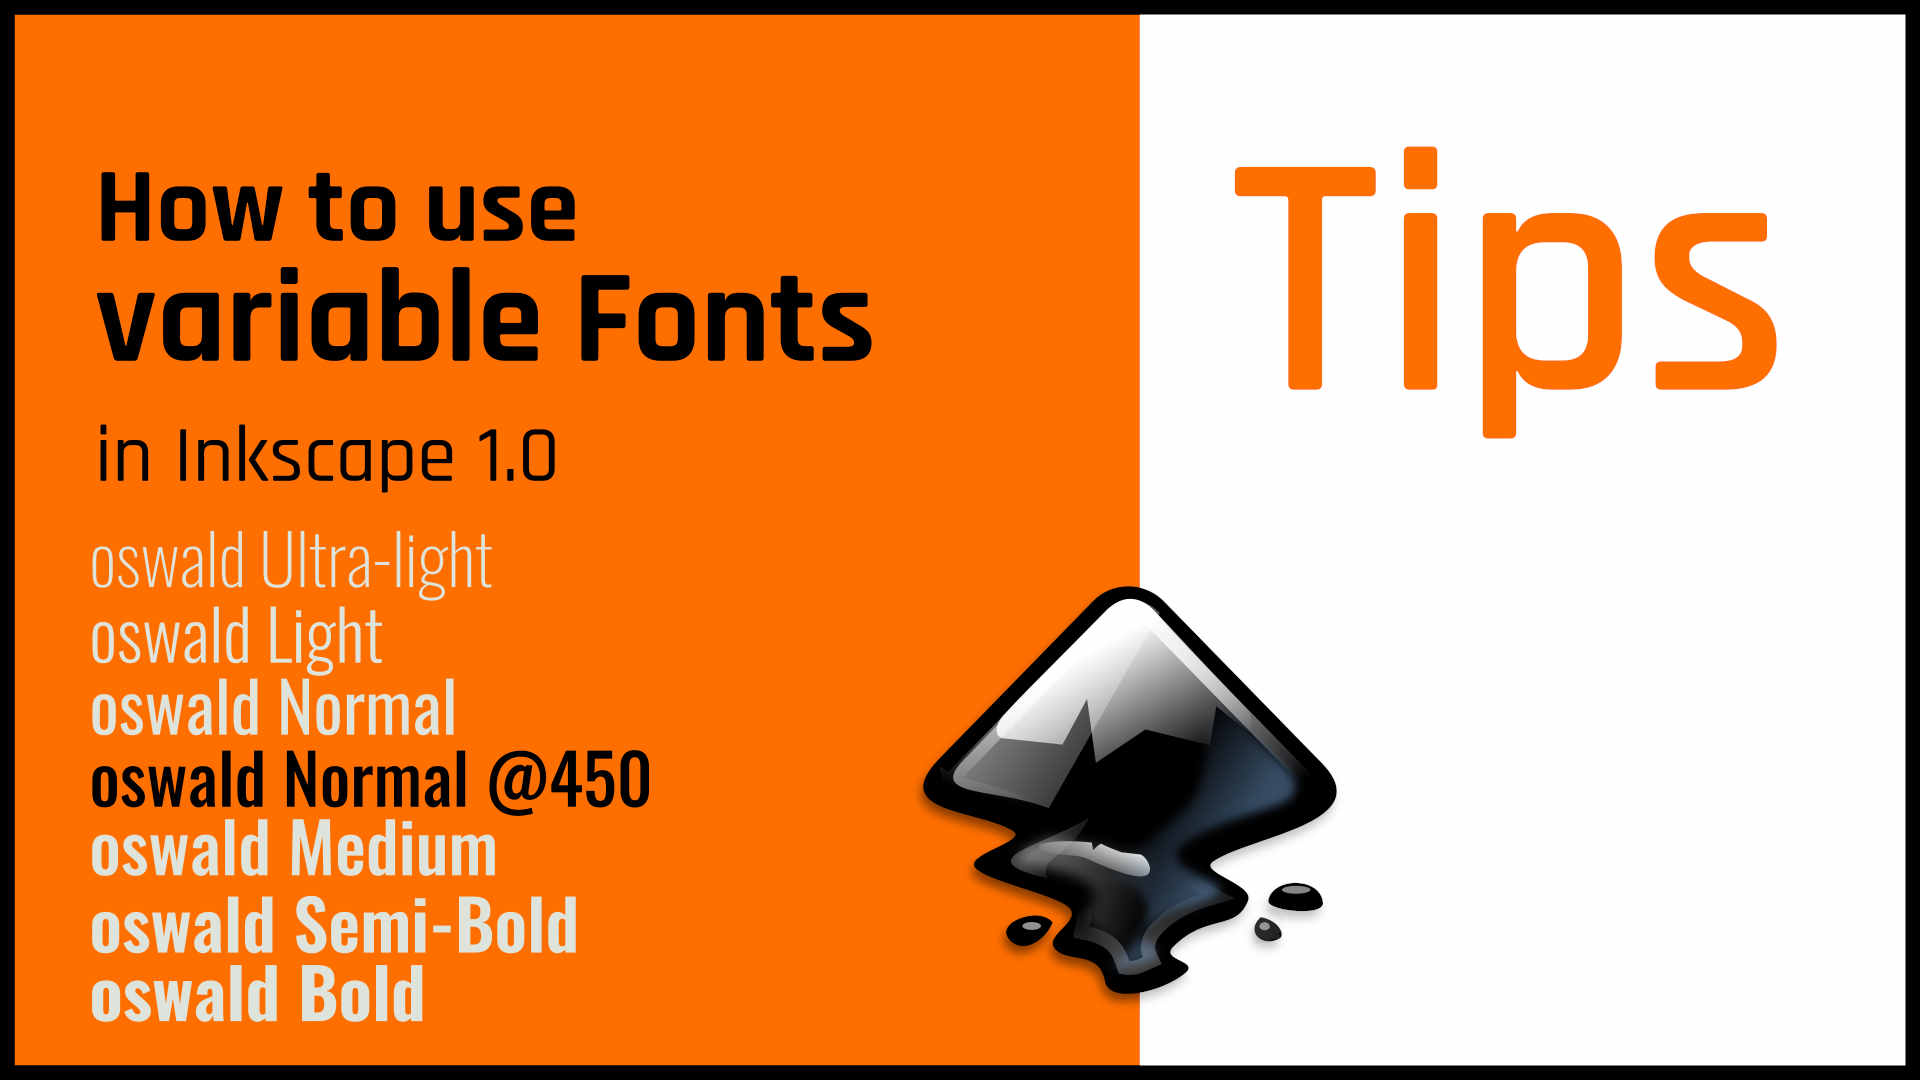 How to use Variable Fonts in Inkscape 1.0 in few steps